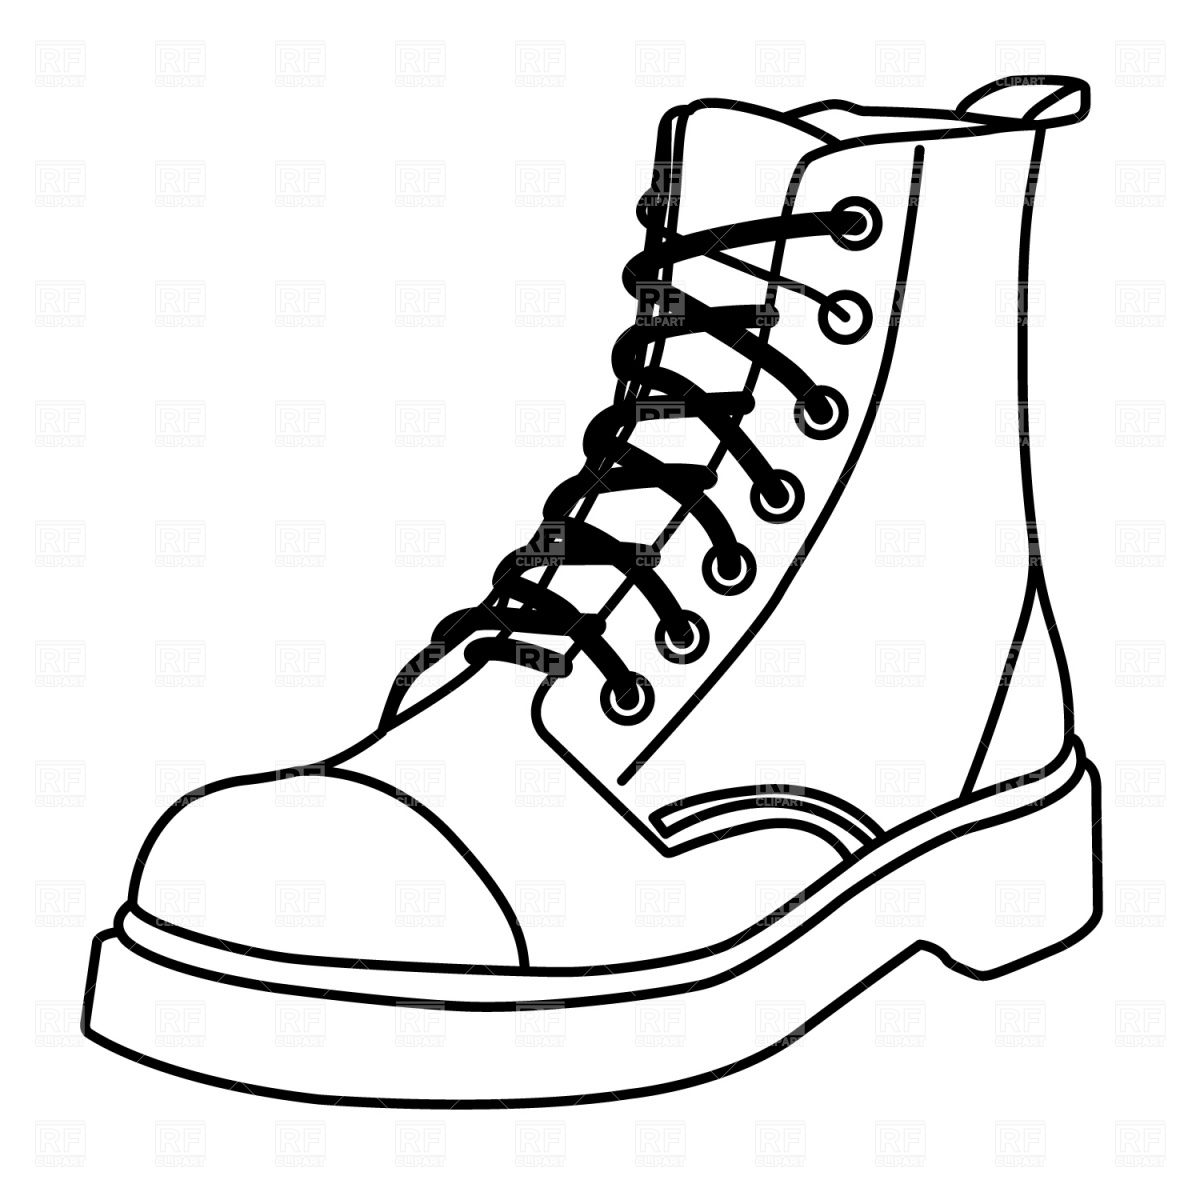 Boot outline vector image. Boots clipart drawing